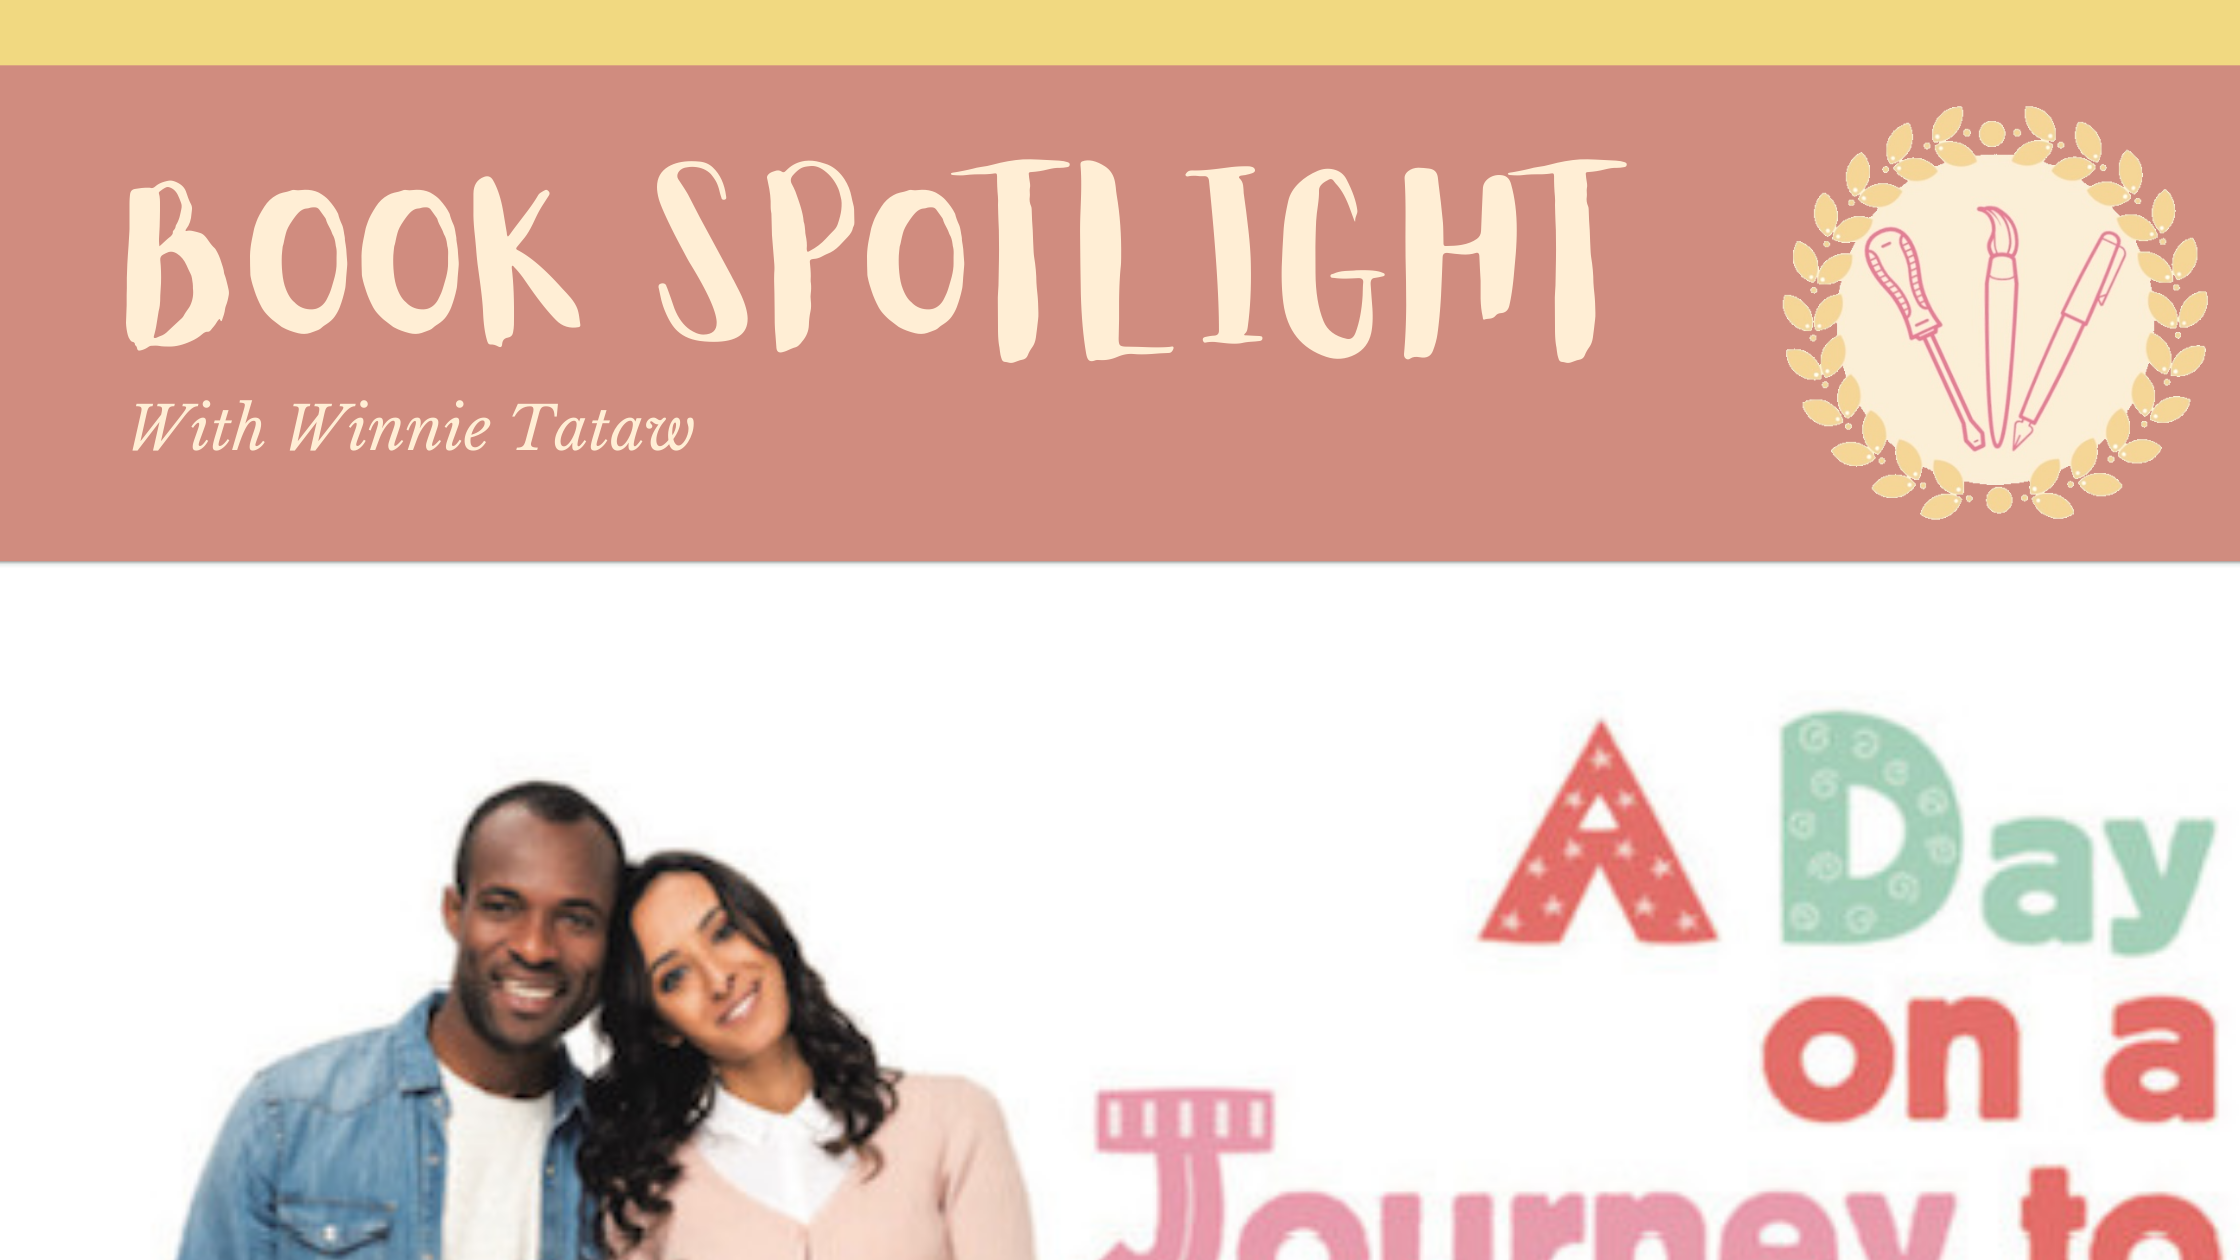 day on a journey to Lakeside Shopping Mall -Vol 1 book spotlight